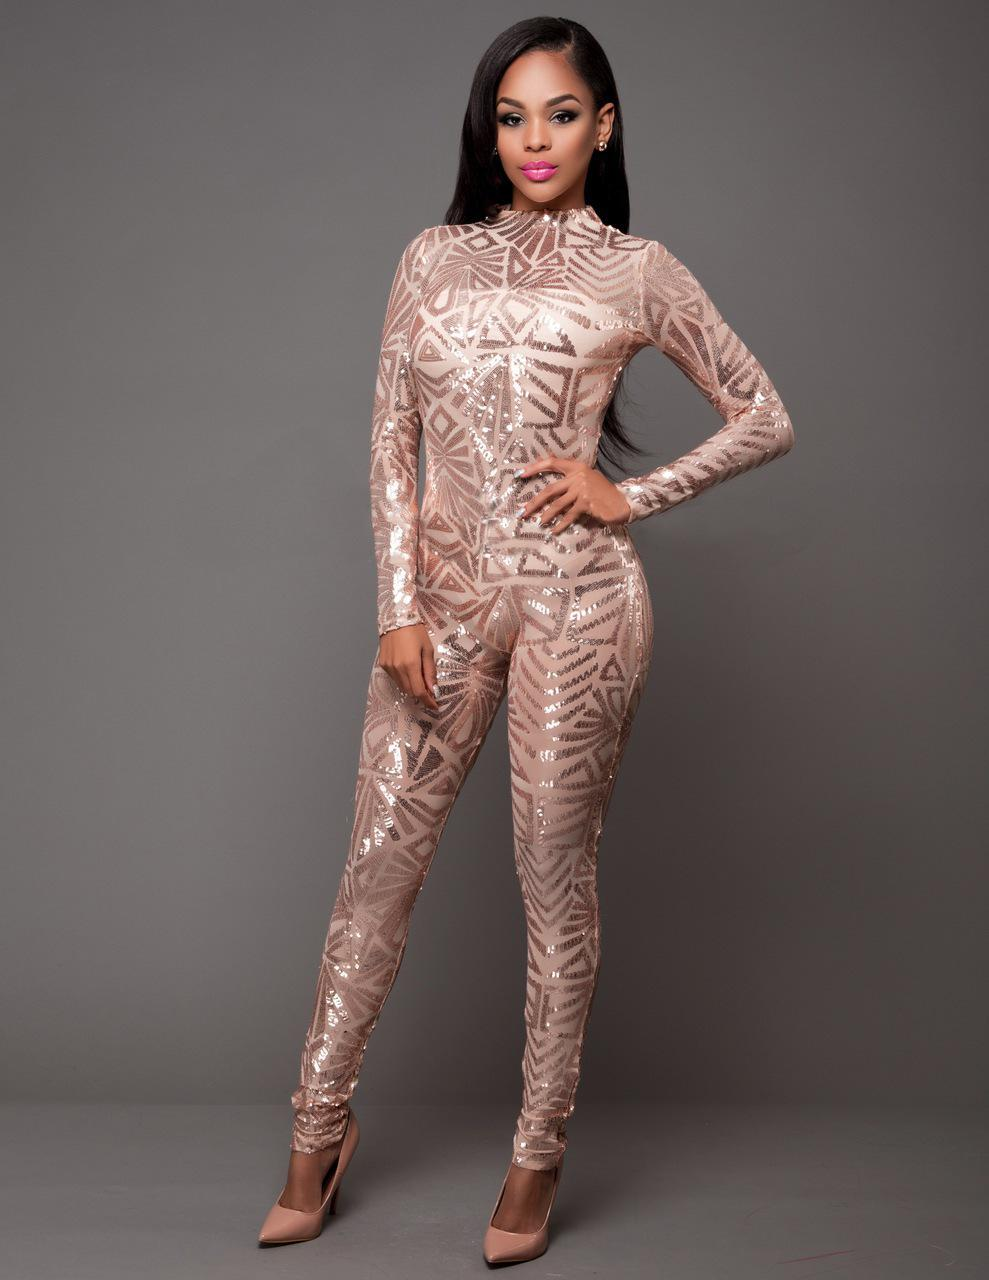 b18654e45d4a 2019 Spring Women Sequin Jumpsuit Sexy O Neck Mesh Patchwork Bodysuit  Glitter Long Sleeve Romper Women Party Club Catsuit N272 From Rykeri